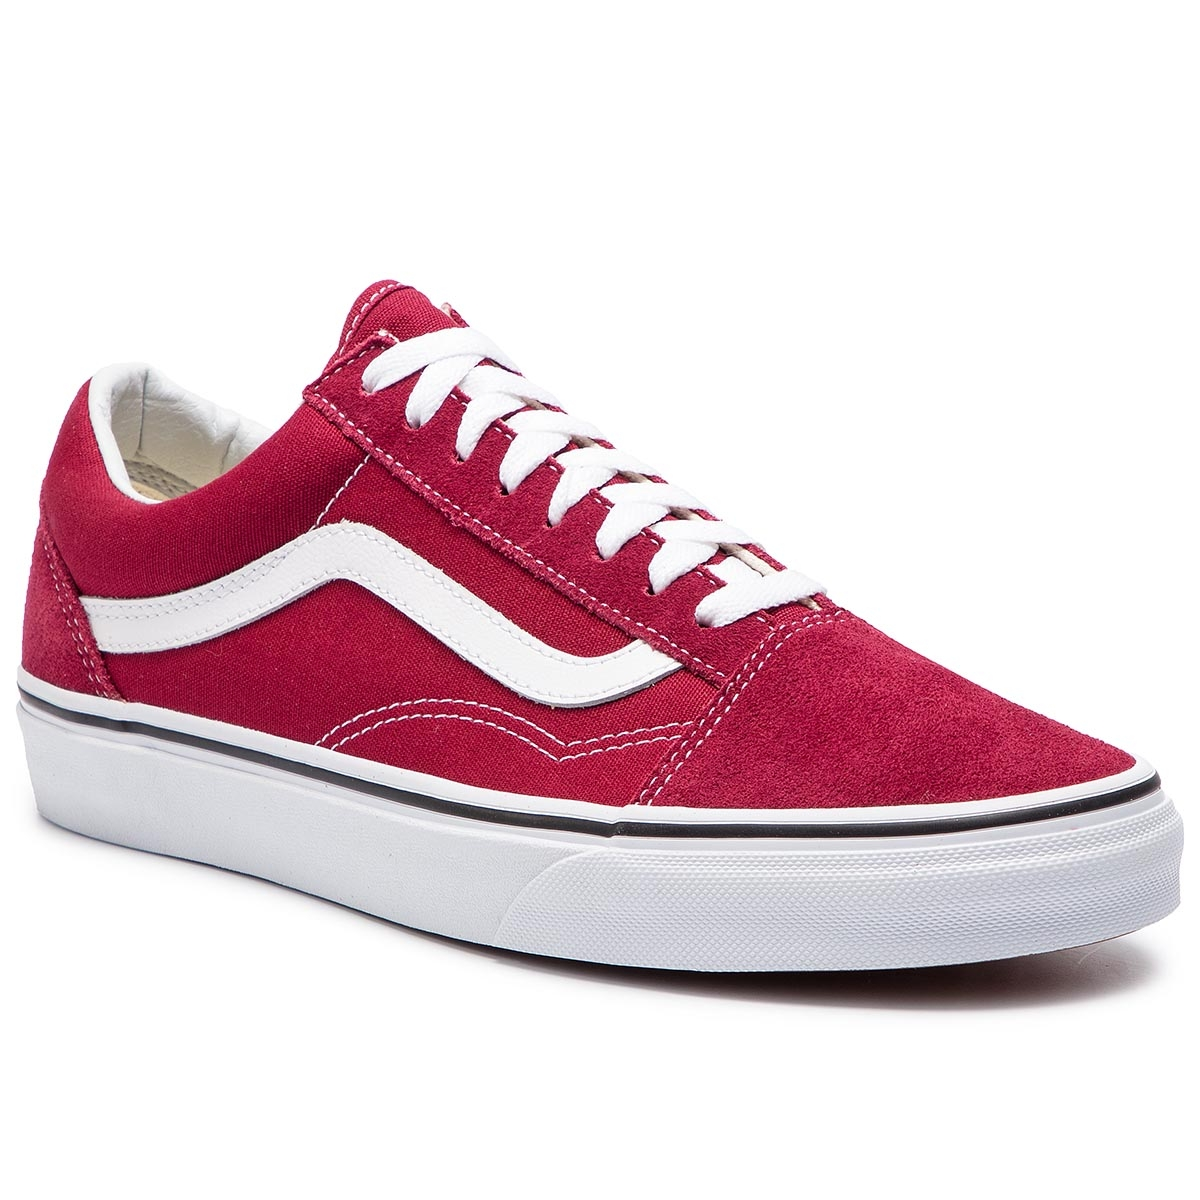 Teniși VANS - Old Skool VN0A38G1VG41 Rumba Red/True White